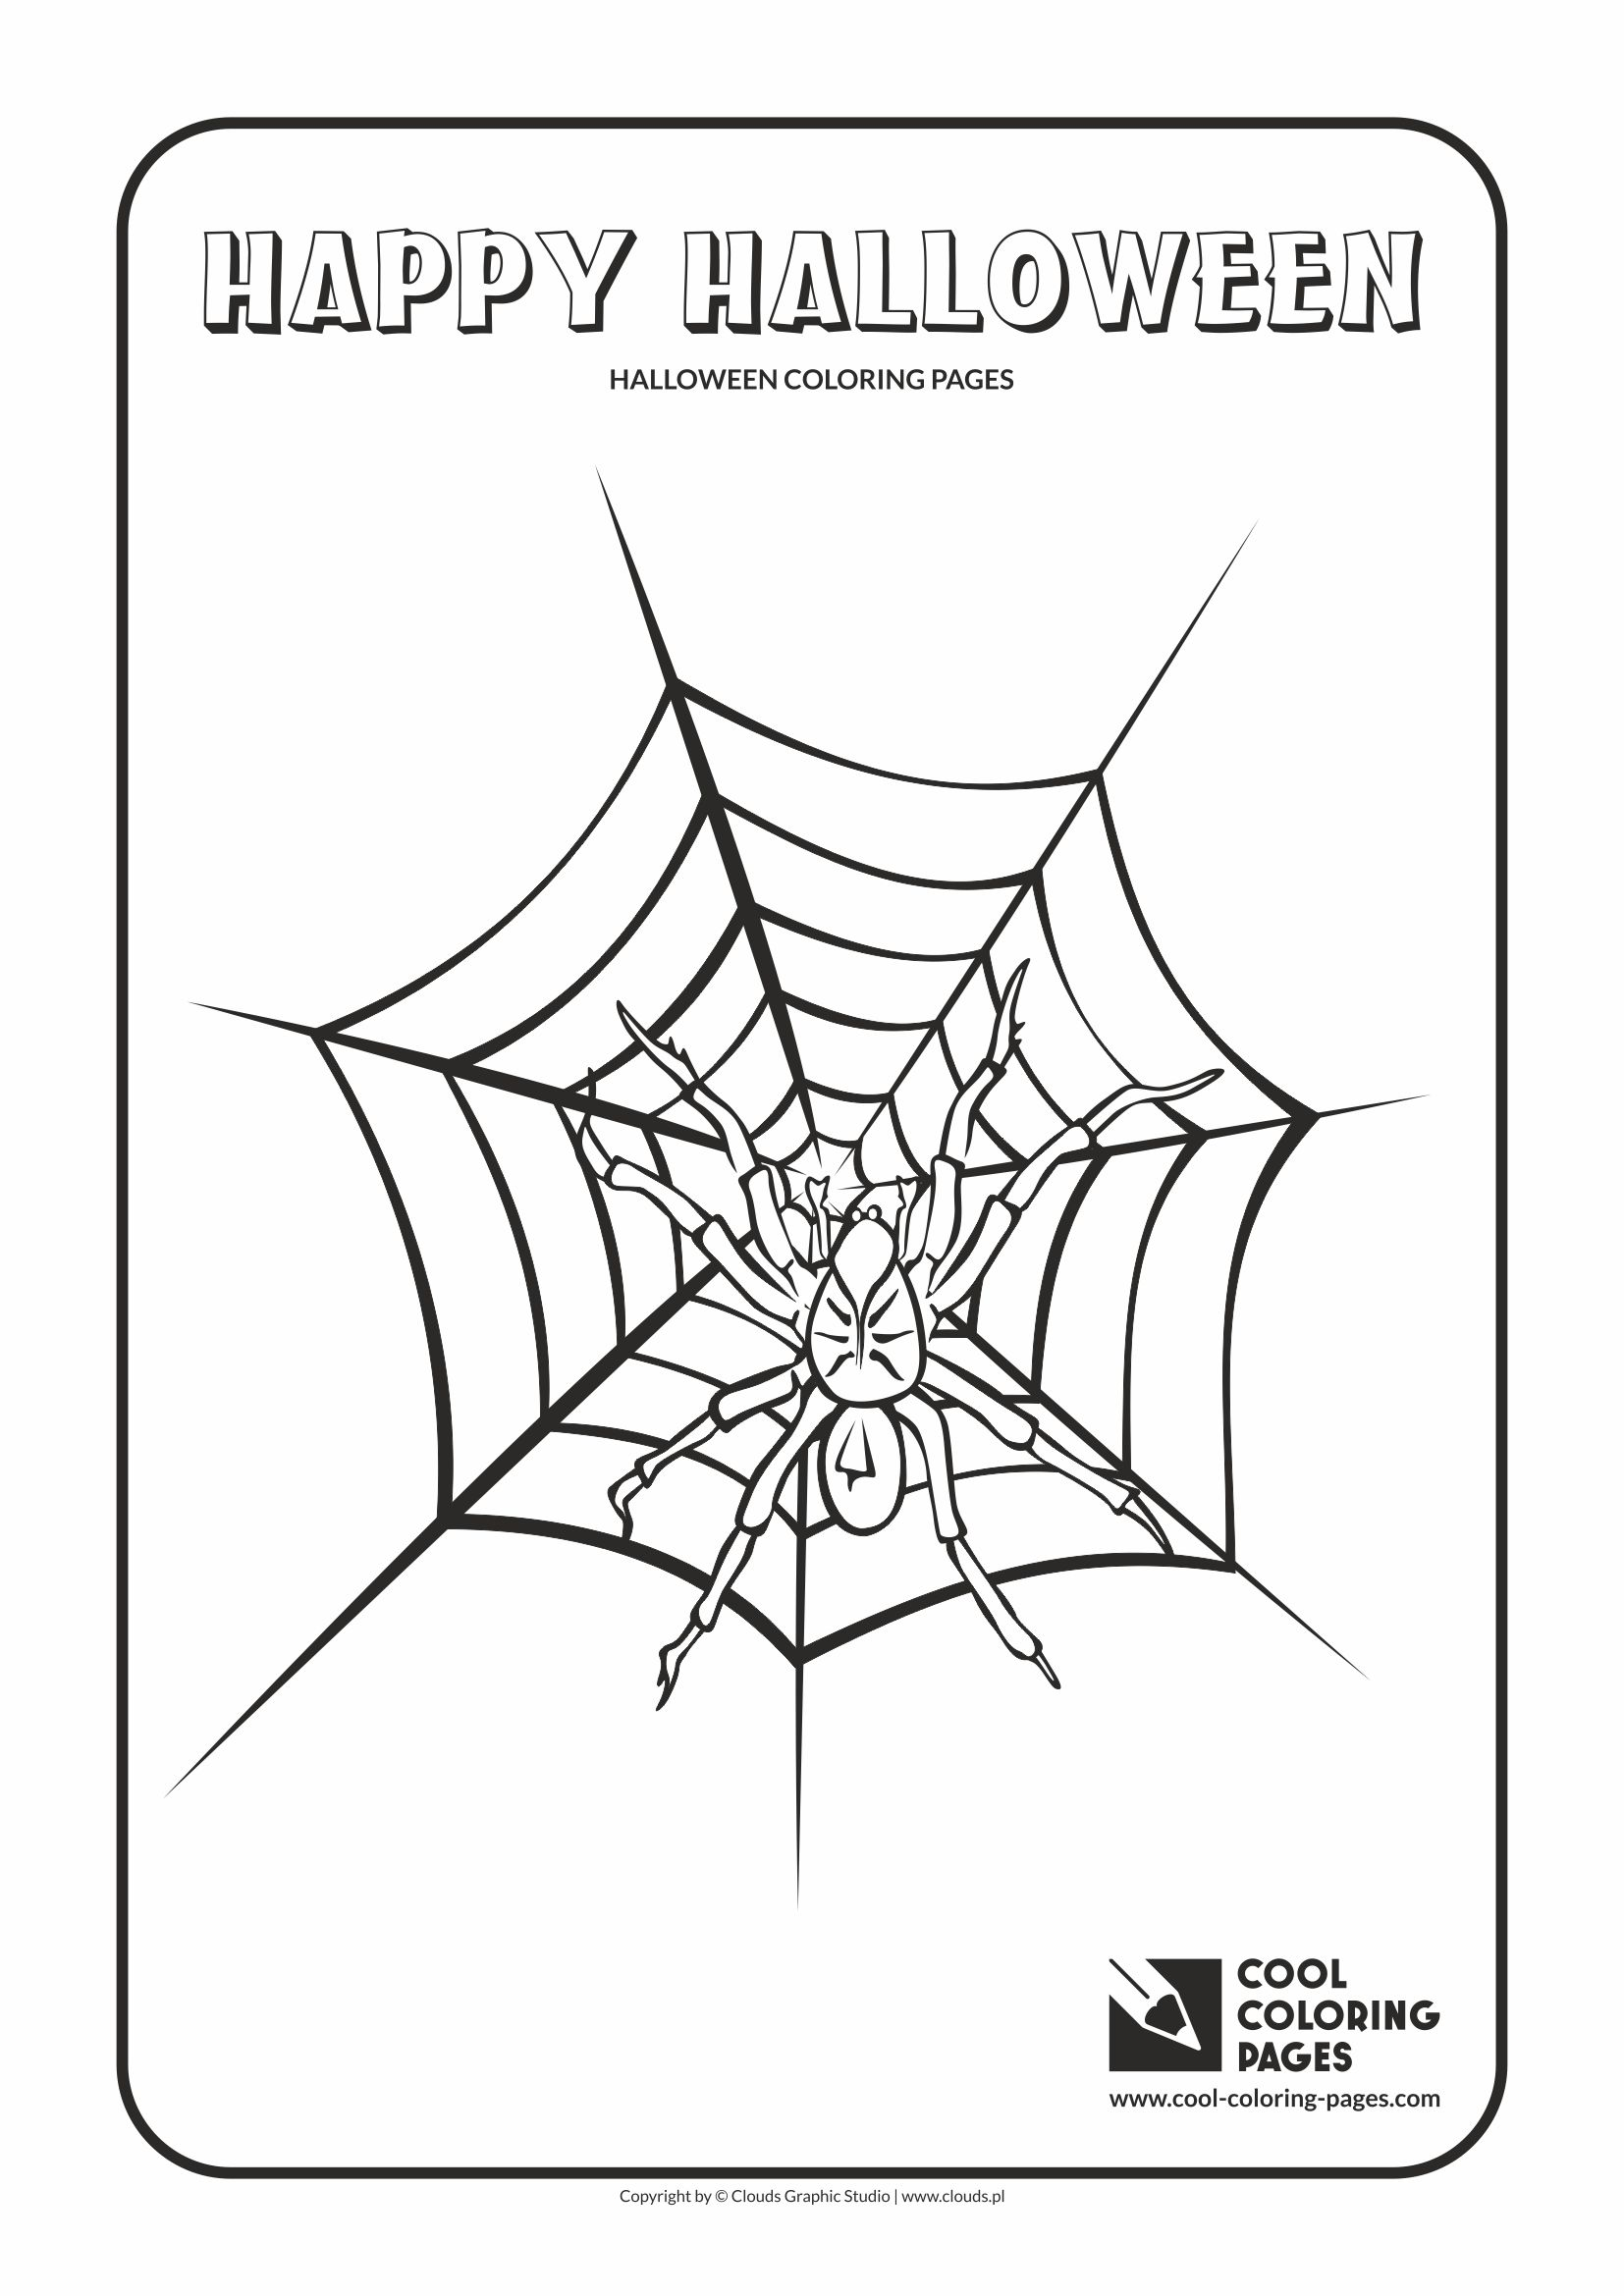 Cool Coloring Pages Home - Cool Coloring Pages | Free educational ...